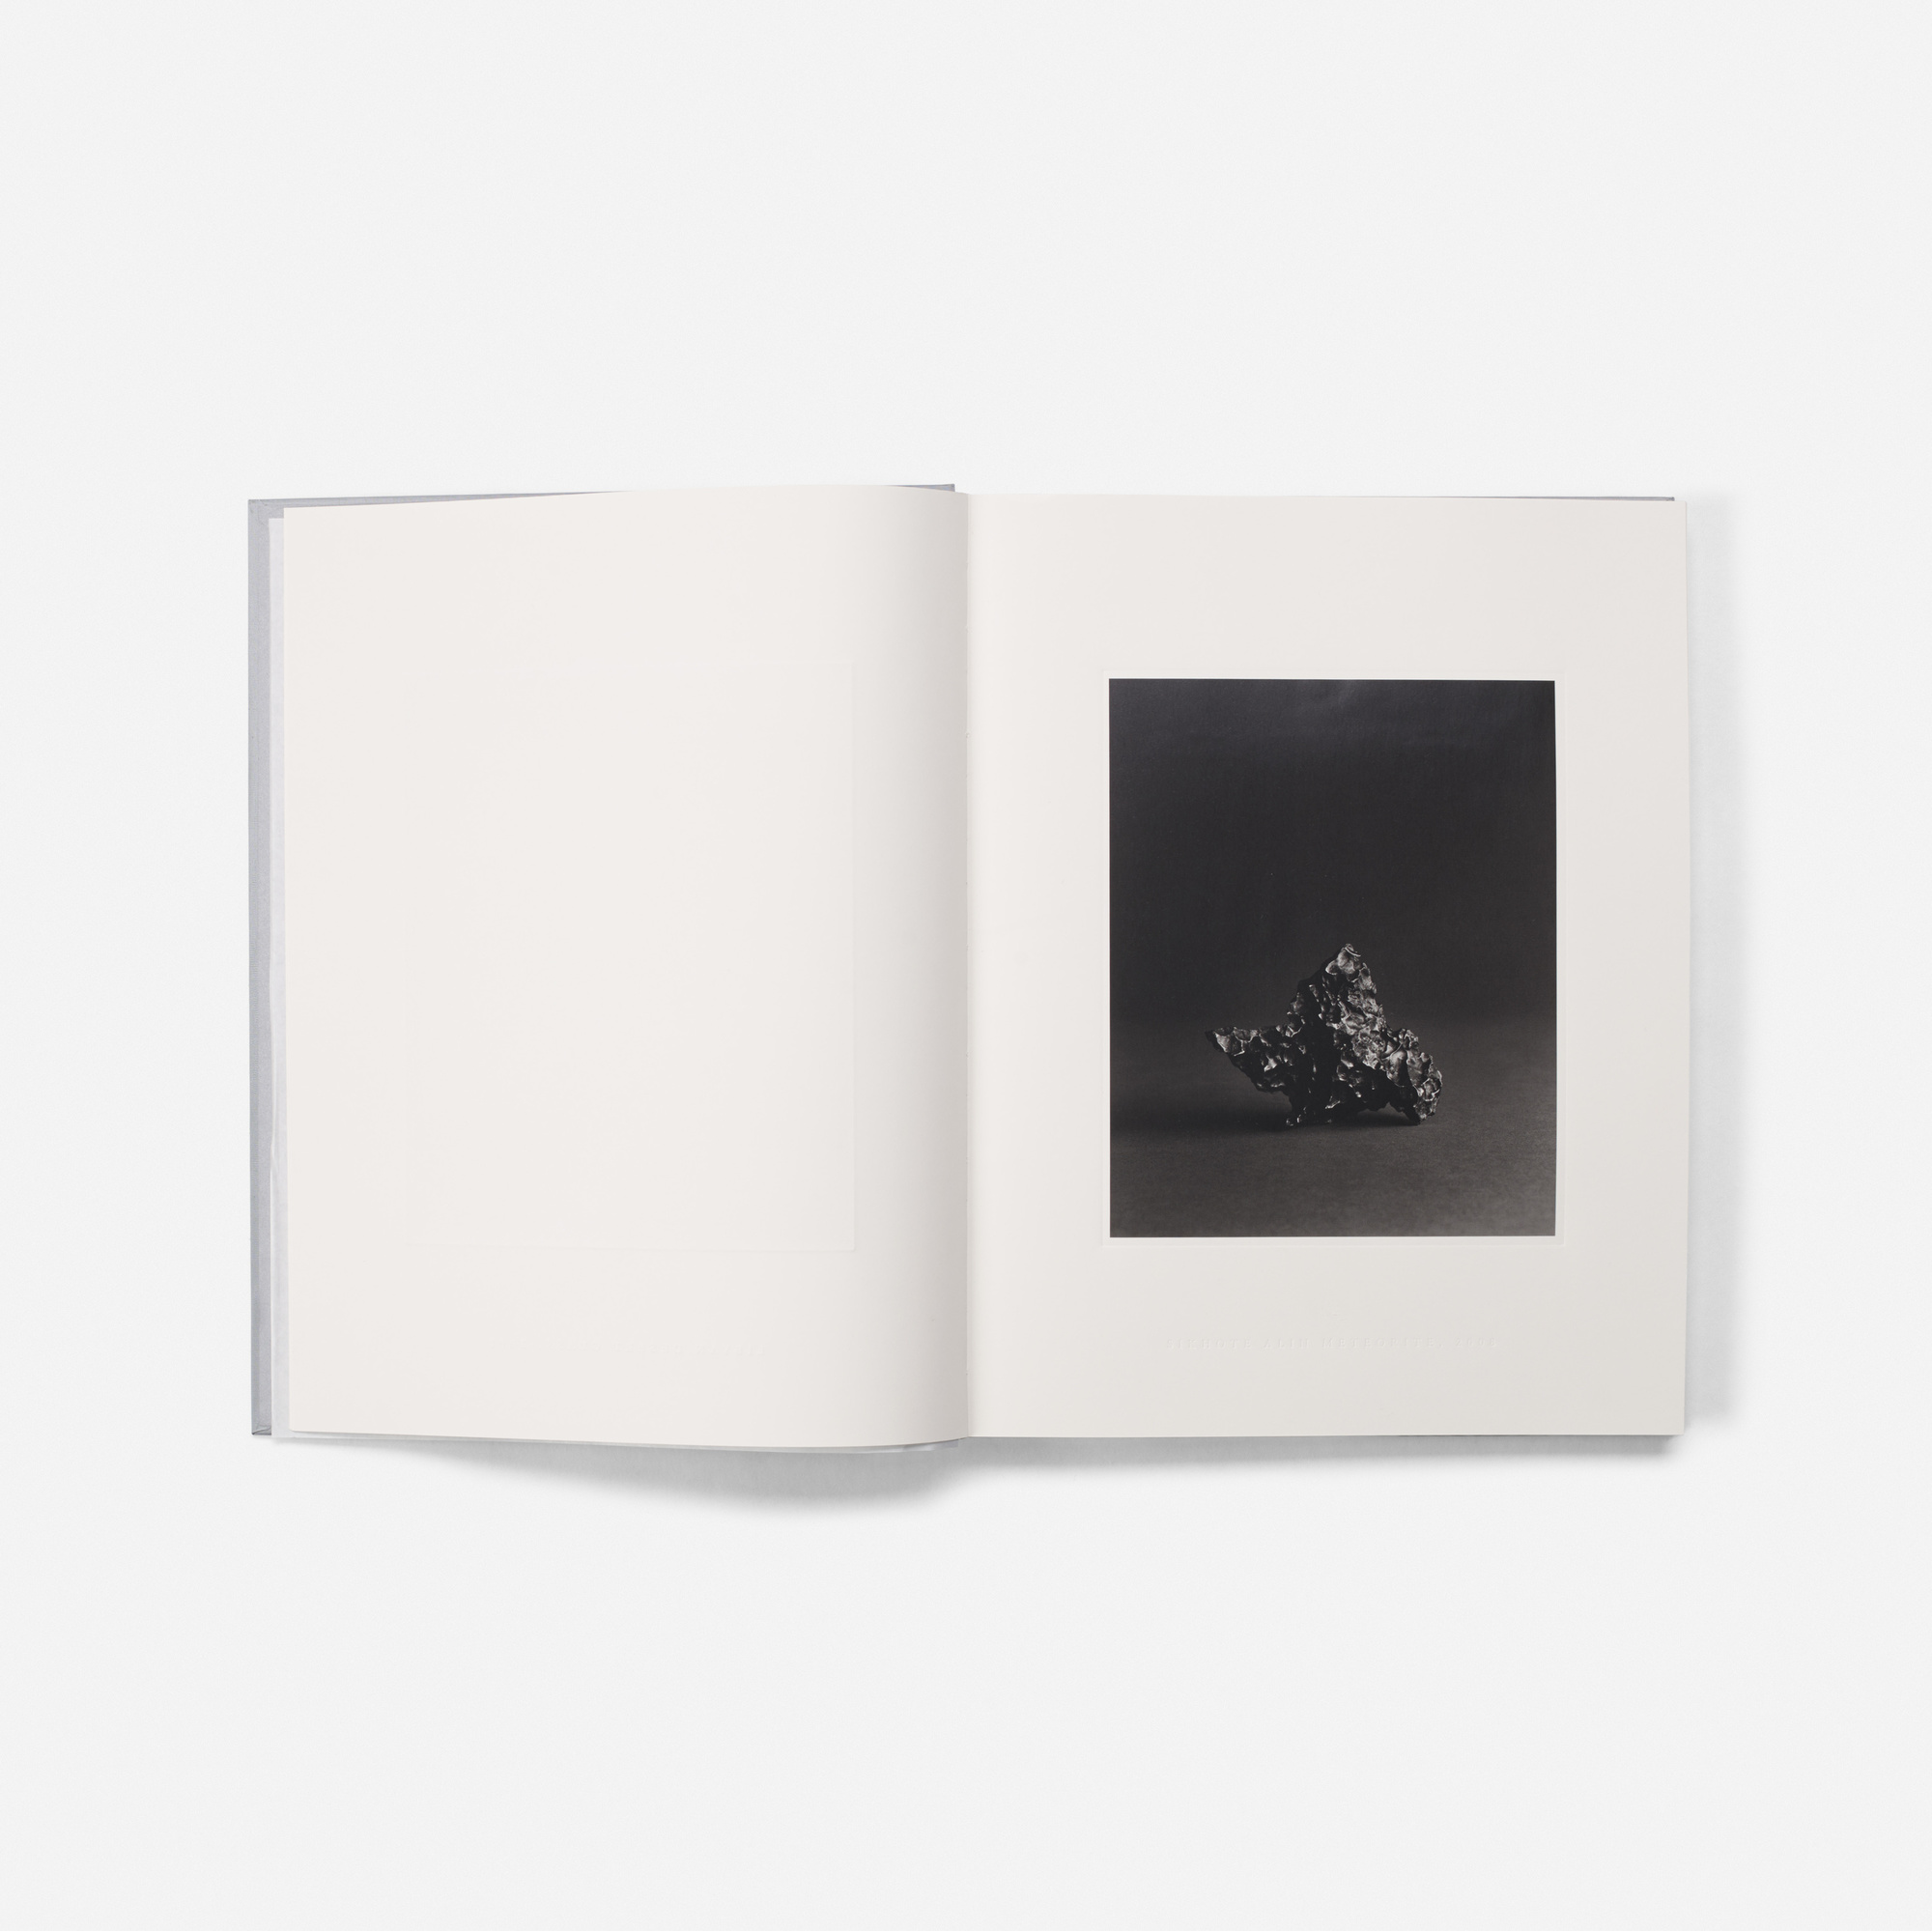 230: Hiroshi Sugimoto / The Long Never and Lightning Fields 304 (5 of 10)